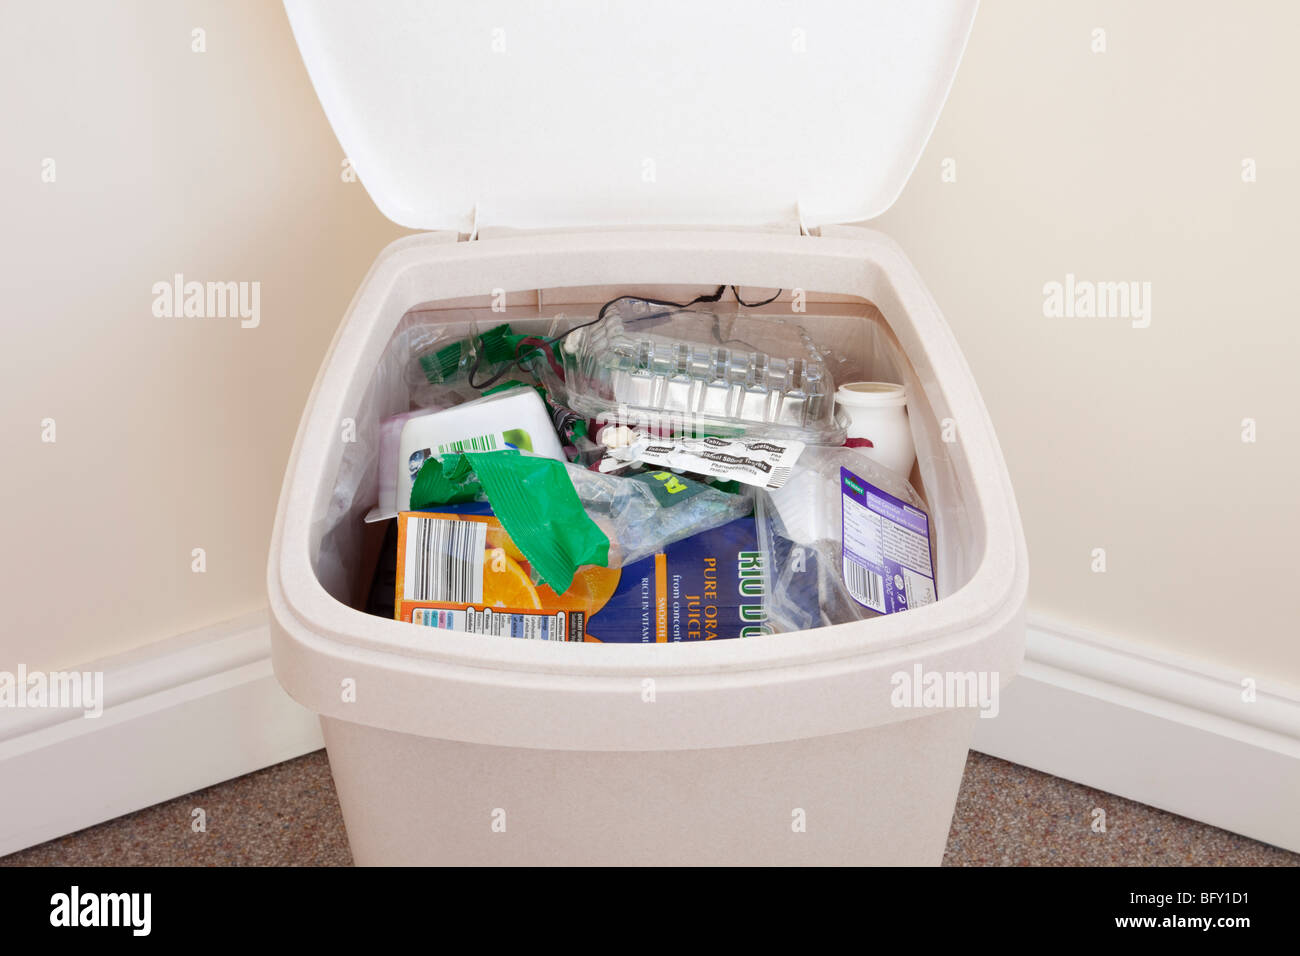 Plastic waste bin full of household rubbish with lid open. England, UK, Britain - Stock Image